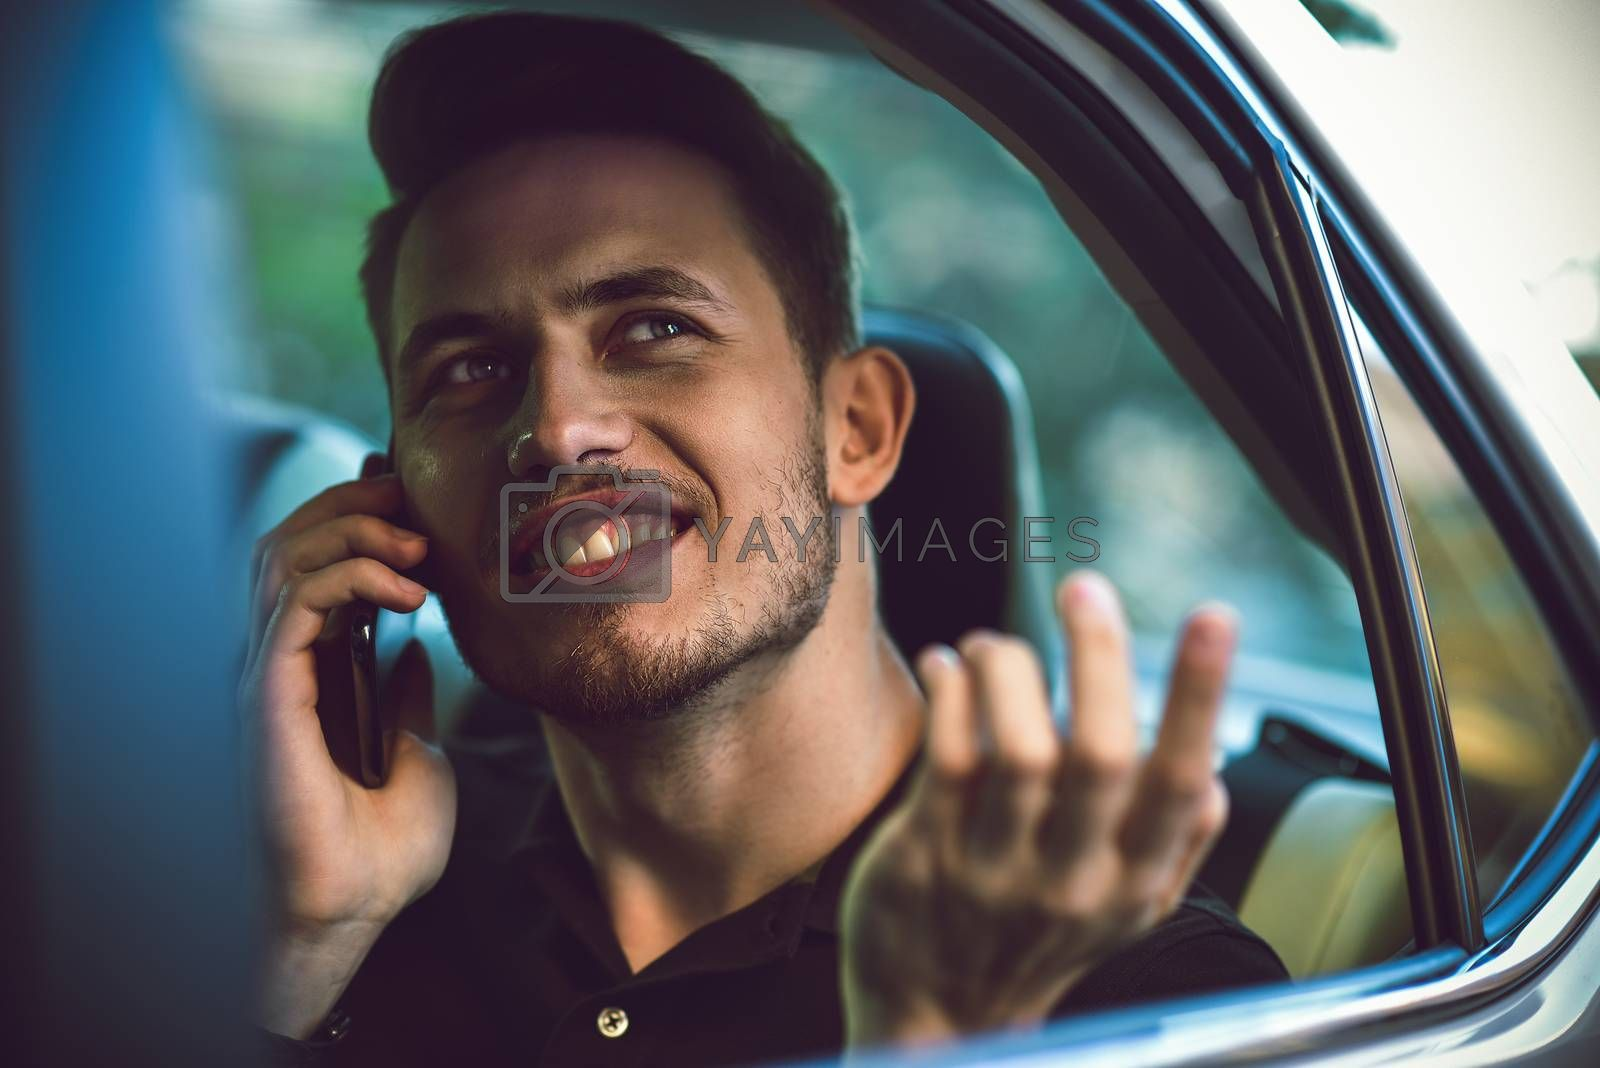 Passenger businessman use a smartphone in the back seat of the car. by Nickstock